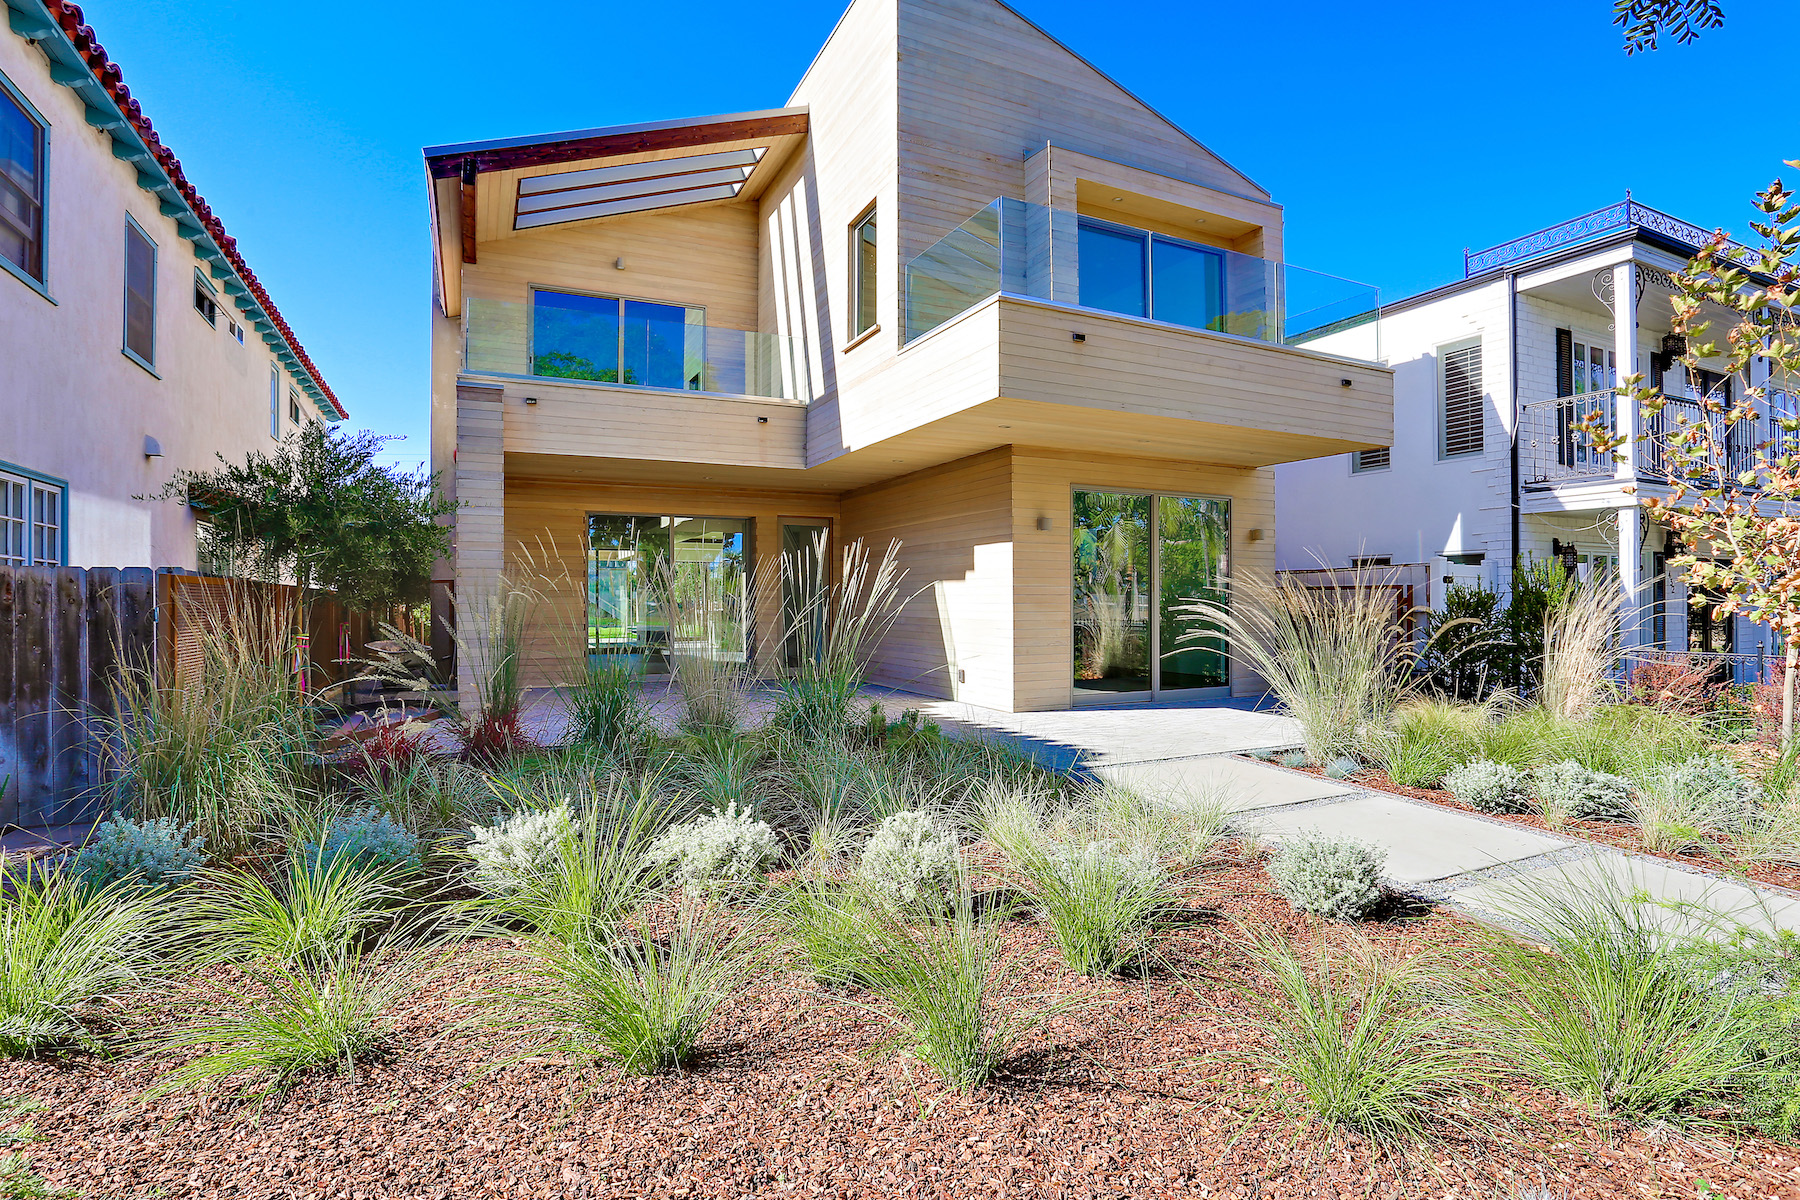 Single Family Home for Sale at 436 Glorietta Blvd Coronado, California 92118 United States